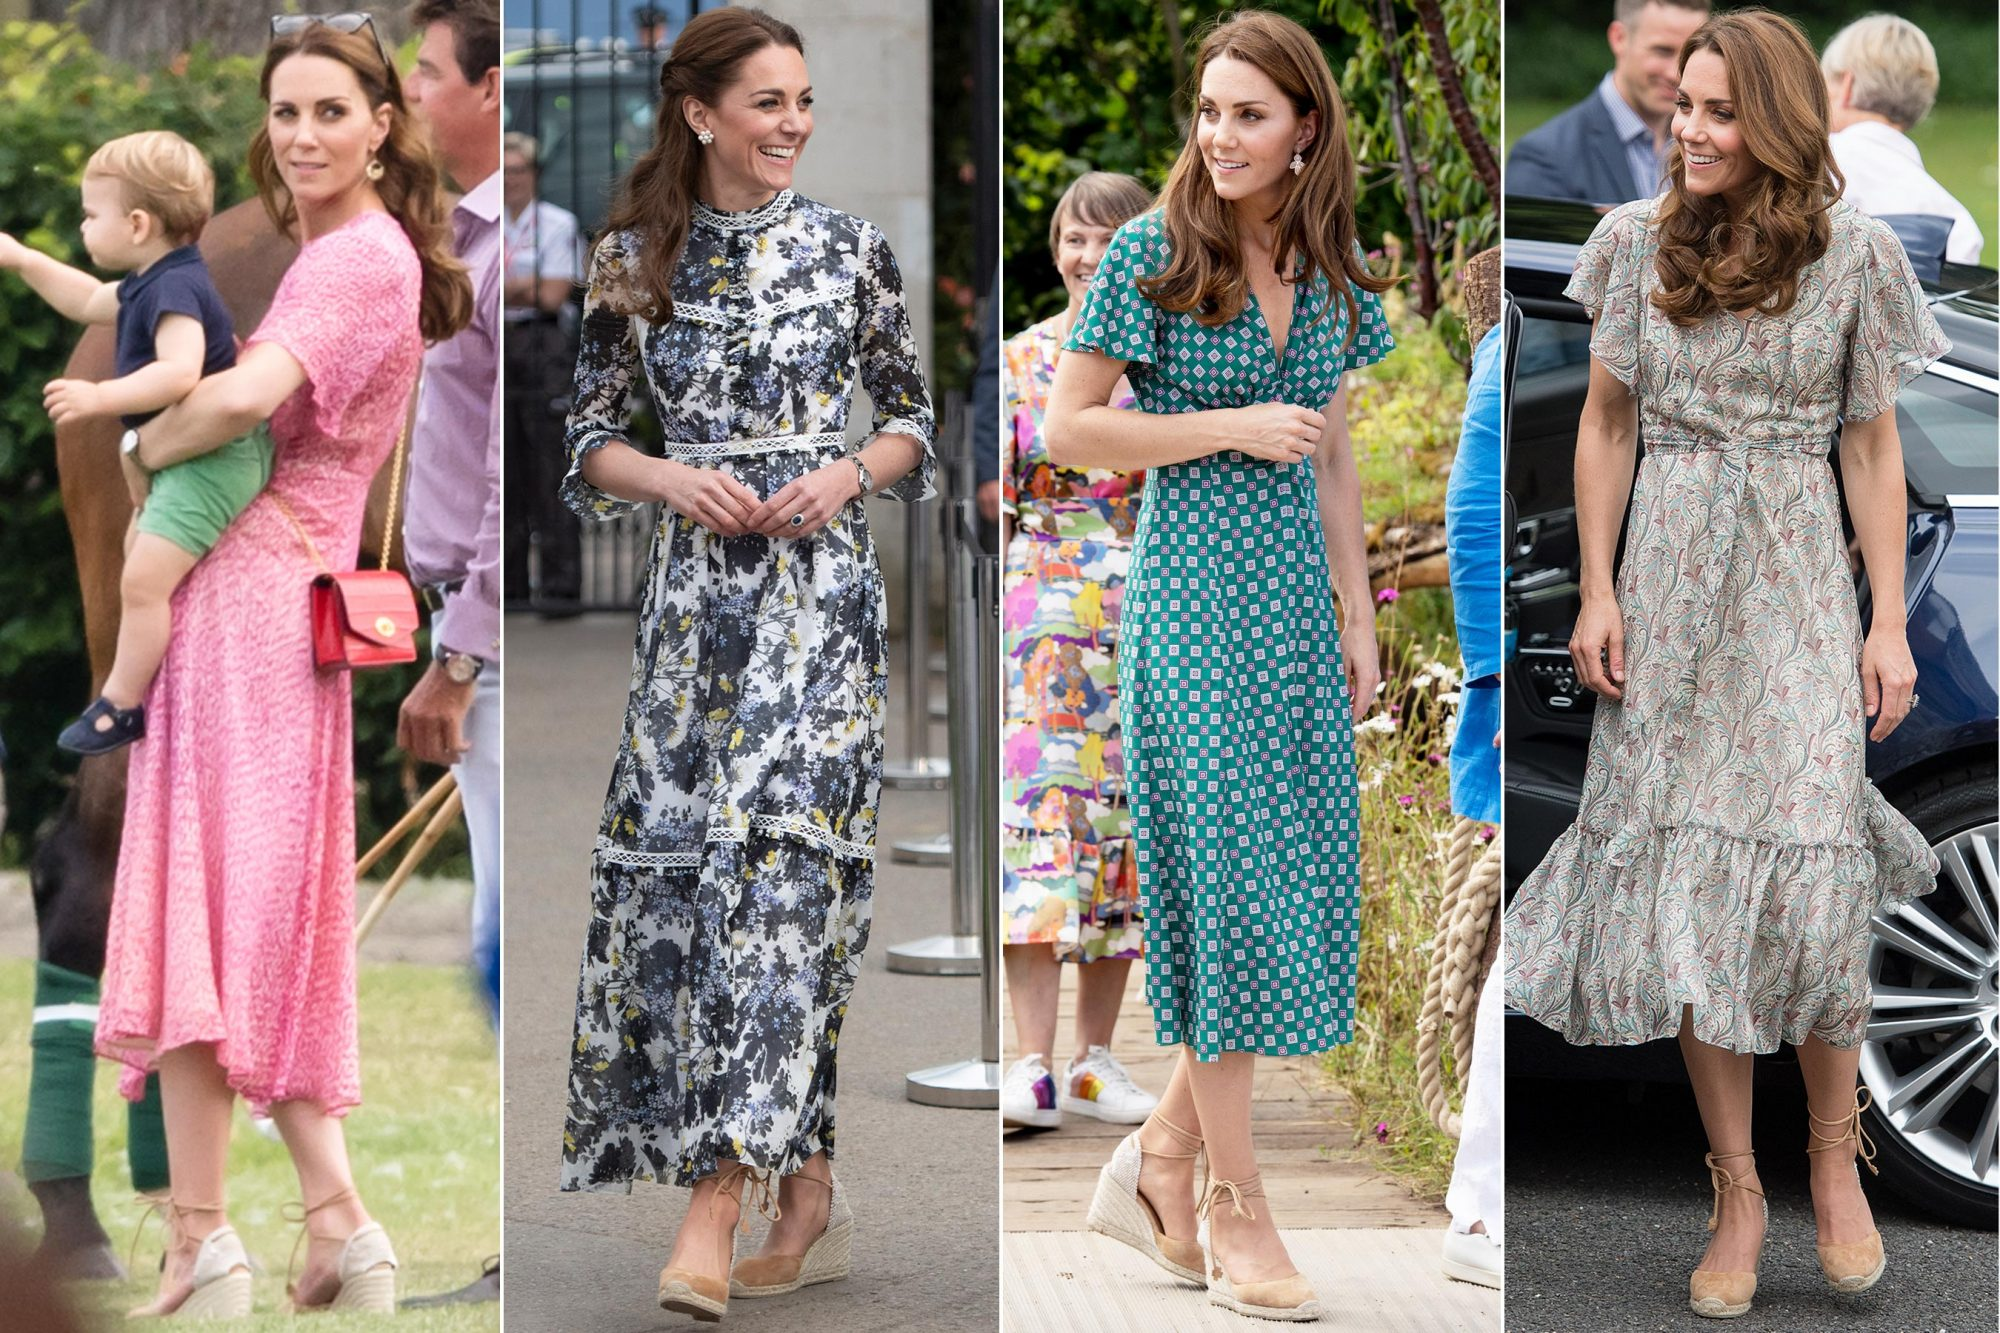 WOKINGHAM, ENGLAND - JULY 10: Catherine, Duchess of Cambridge and Prince Louis attend The King Power Royal Charity Polo Day at Billingbear Polo Club on July 10, 2019 in Wokingham, England. (Photo by Samir Hussein/WireImage) LONDON, ENGLAND - MAY 20: Catherine, Duchess of Cambridge and Prince William at the RHS Chelsea Flower Show 2019 press day at Chelsea Flower Show on May 20, 2019 in London, England. (Photo by Geoff Pugh - WPA Pool/Getty Images) LONDON, ENGLAND - JULY 01: Catherine, Duchess of Cambridge visits The RHS Back to Nature Garden she designed at the 2019 RHS Hampton Court Palace Flower Show at Hampton Court Palace on July 1, 2019 in London, England. (Photo by Mark Cuthbert/UK Press via Getty Images) KINGSTON, ENGLAND - JUNE 25: Catherine, Duchess of Cambridge joins a photography workshop for Action for Children, run by the Royal Photographic Society at Warren Park on June 25, 2019 in Kingston, England.HRH has today become Patron of The Royal Photographic Society. (Photo by Samir Hussein/WireImage)